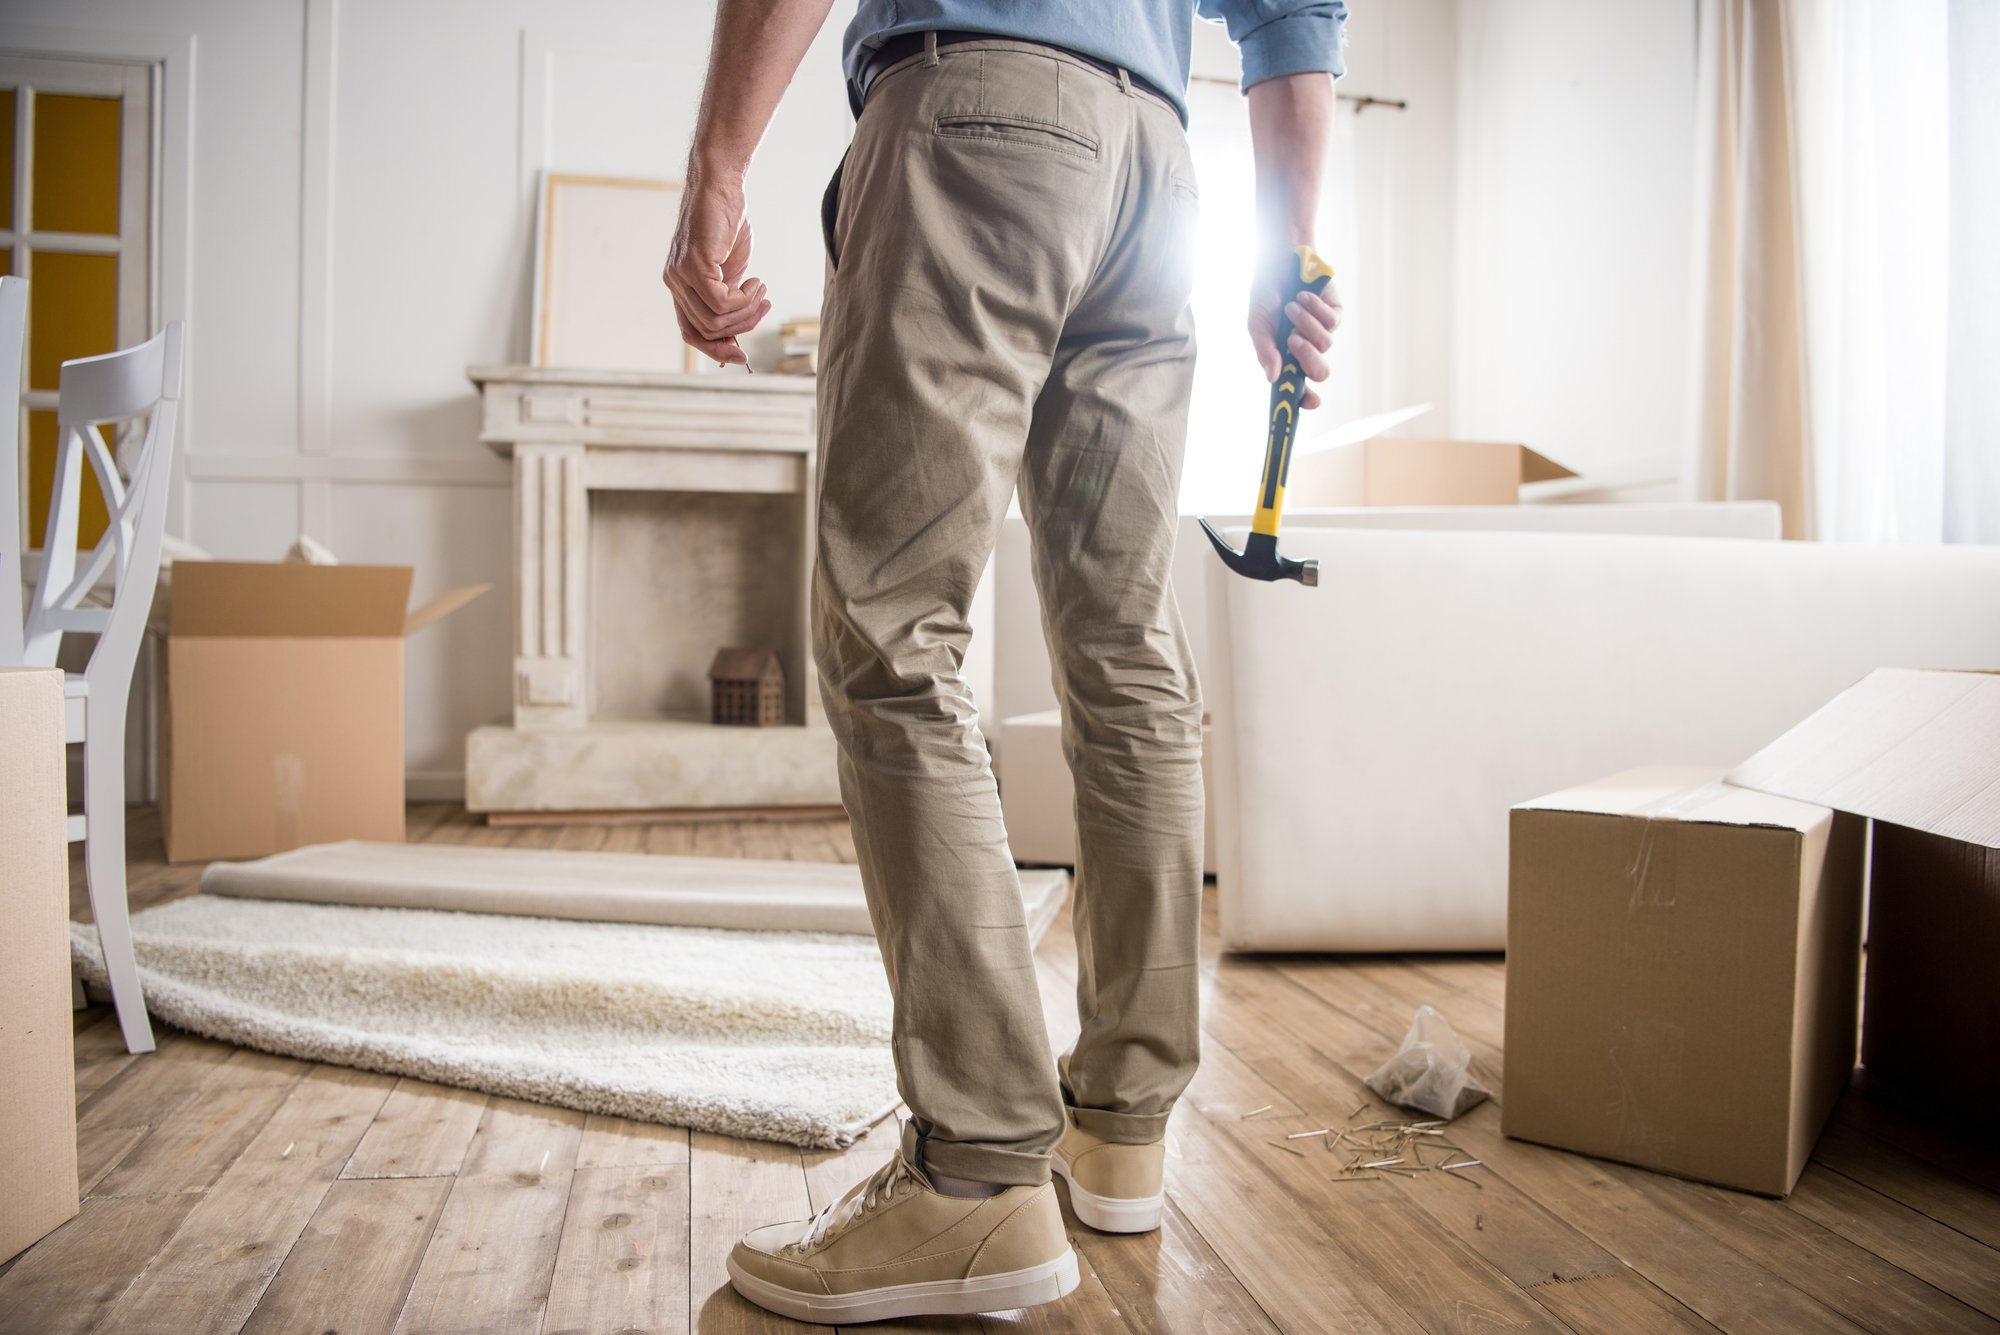 How to Be More Efficient with Your DIY Home Improvement Projects